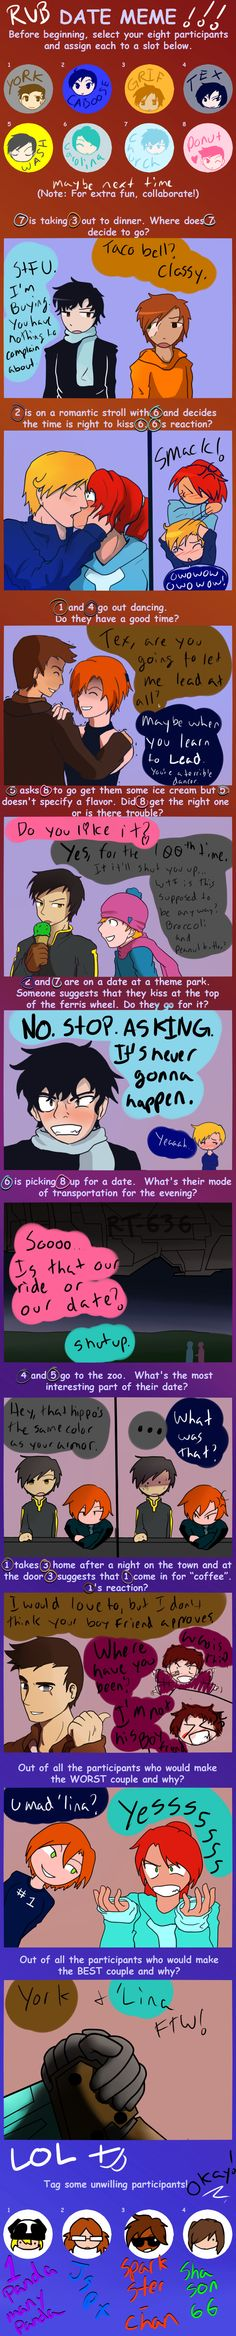 RvB Date Meme by CaptainTimber.deviantart.com on @deviantART    it's a bit odd but very IC